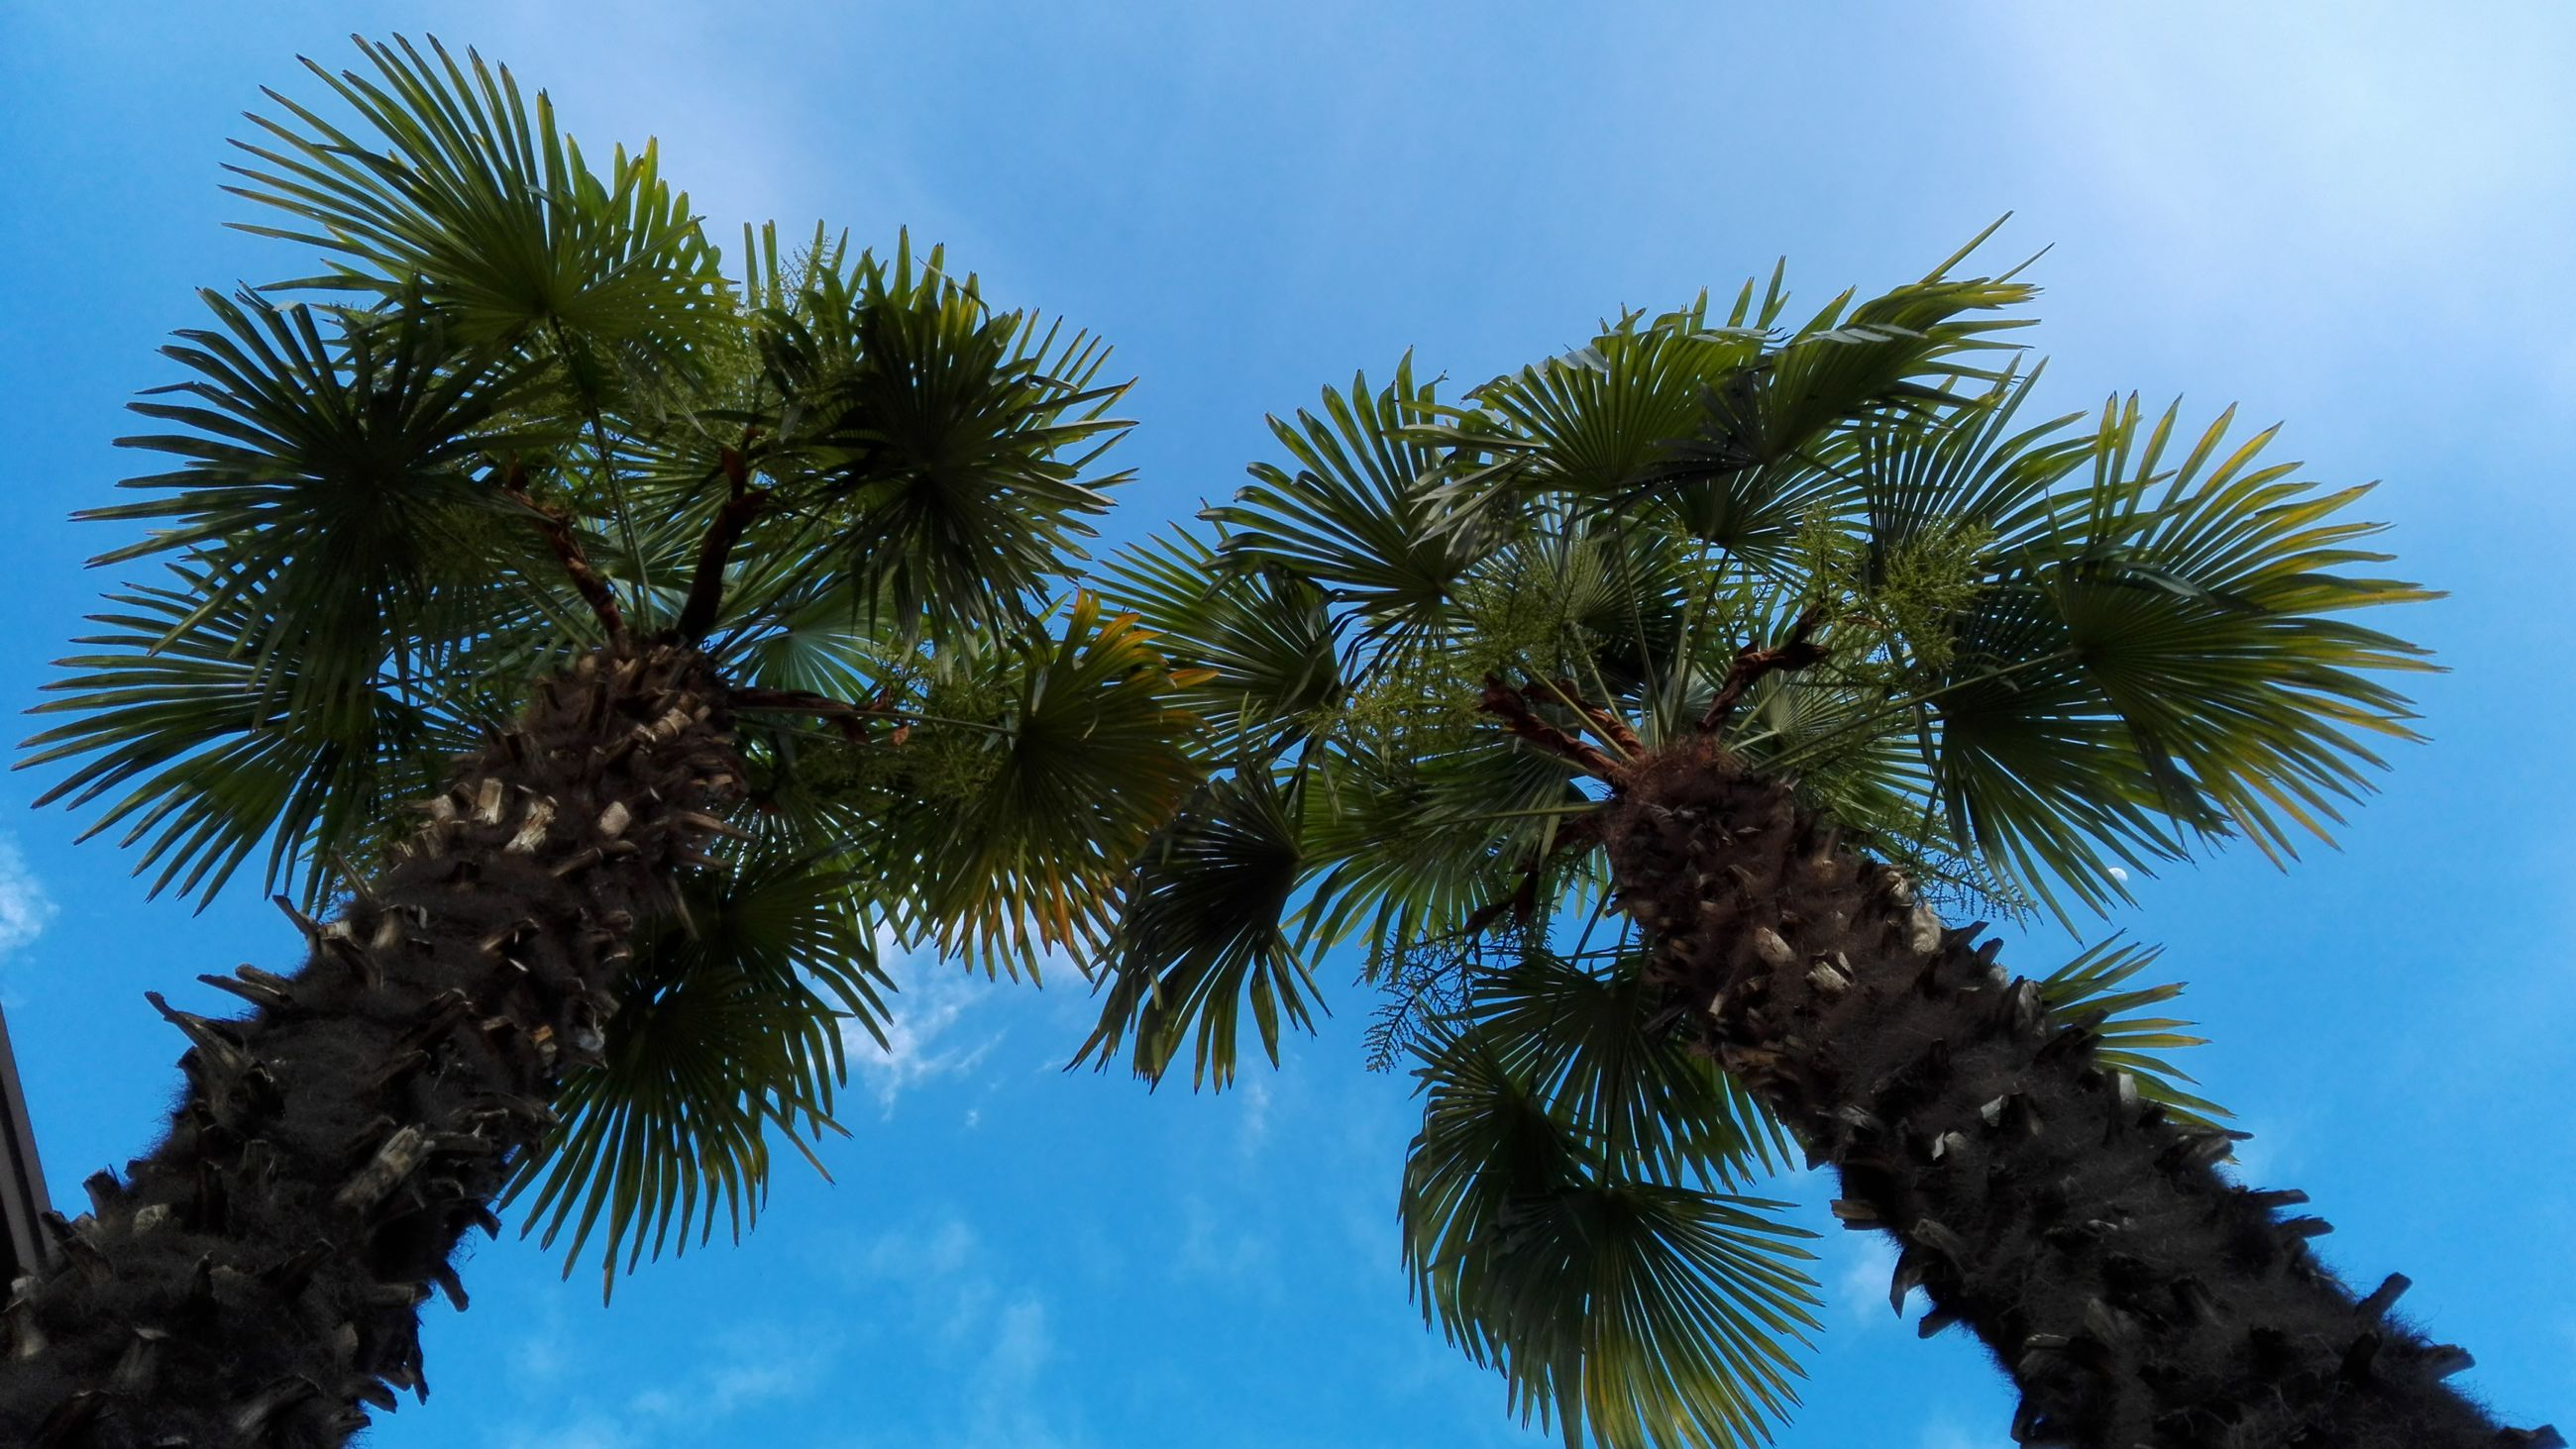 low angle view, palm tree, tree, growth, sky, clear sky, nature, tranquility, blue, beauty in nature, palm leaf, branch, tree trunk, leaf, coconut palm tree, scenics, tropical tree, day, sunlight, tall - high